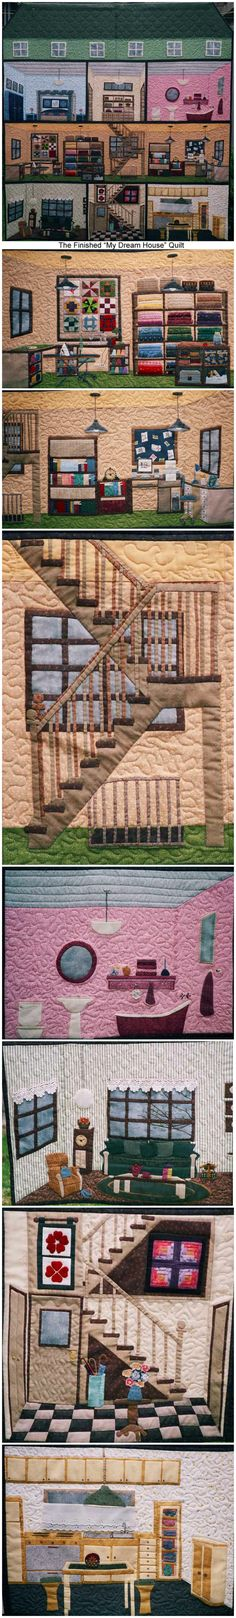 """My Dream House"" by Angie Padilla -- INCREDIBLE applique art quilt"